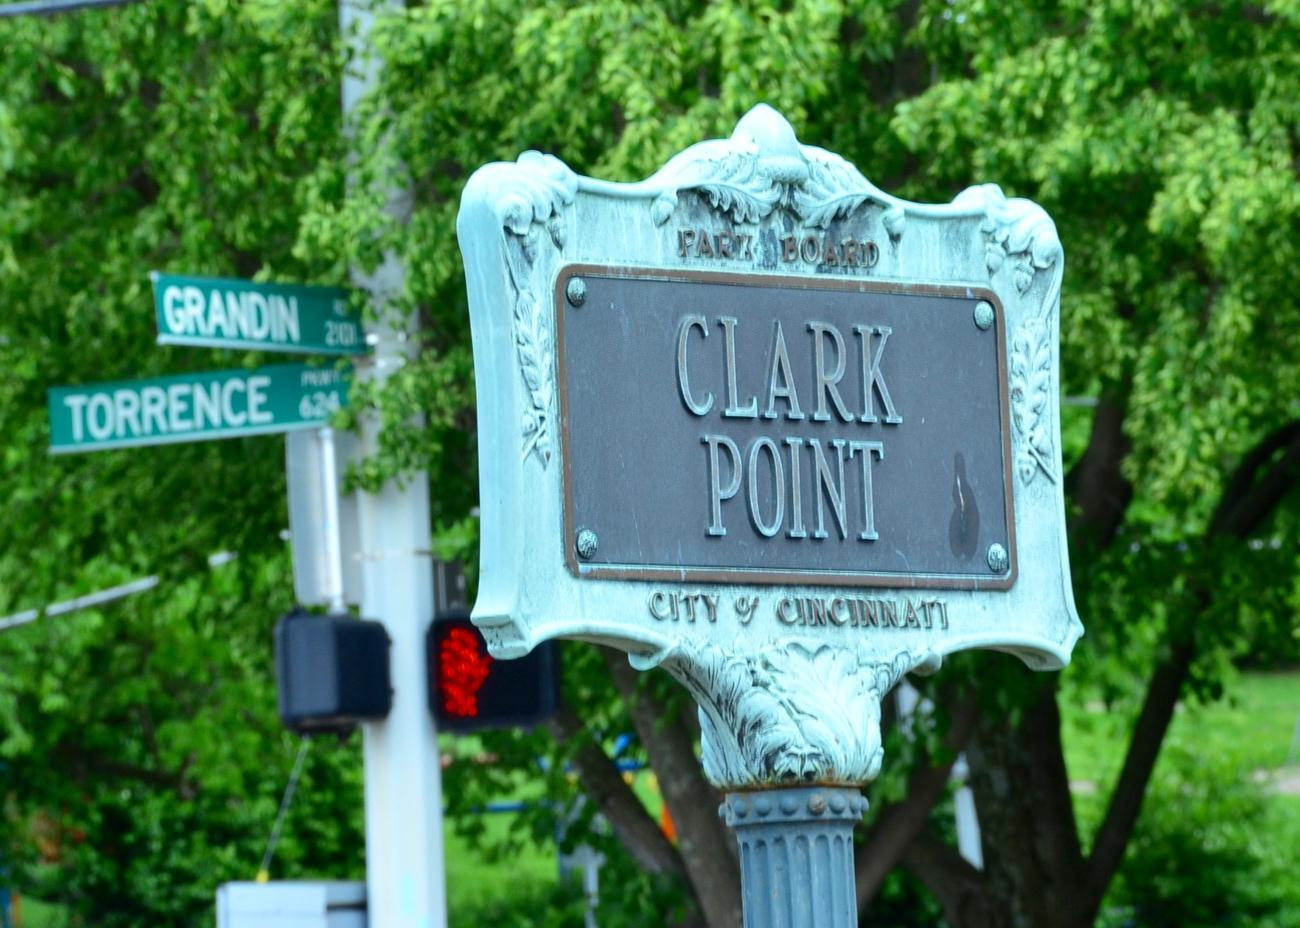 PARK: Clark Point / LOCATION: Corner of Grandin Rd. and Torrence Pkwy in O'Bryonville /  FUN FACT: It's so tiny, it only accounts for a mere 0.05 acres of land. / IMAGE: Leah Zipperstein, Cincinnati Refined // PUBLISHED: 5.8.17